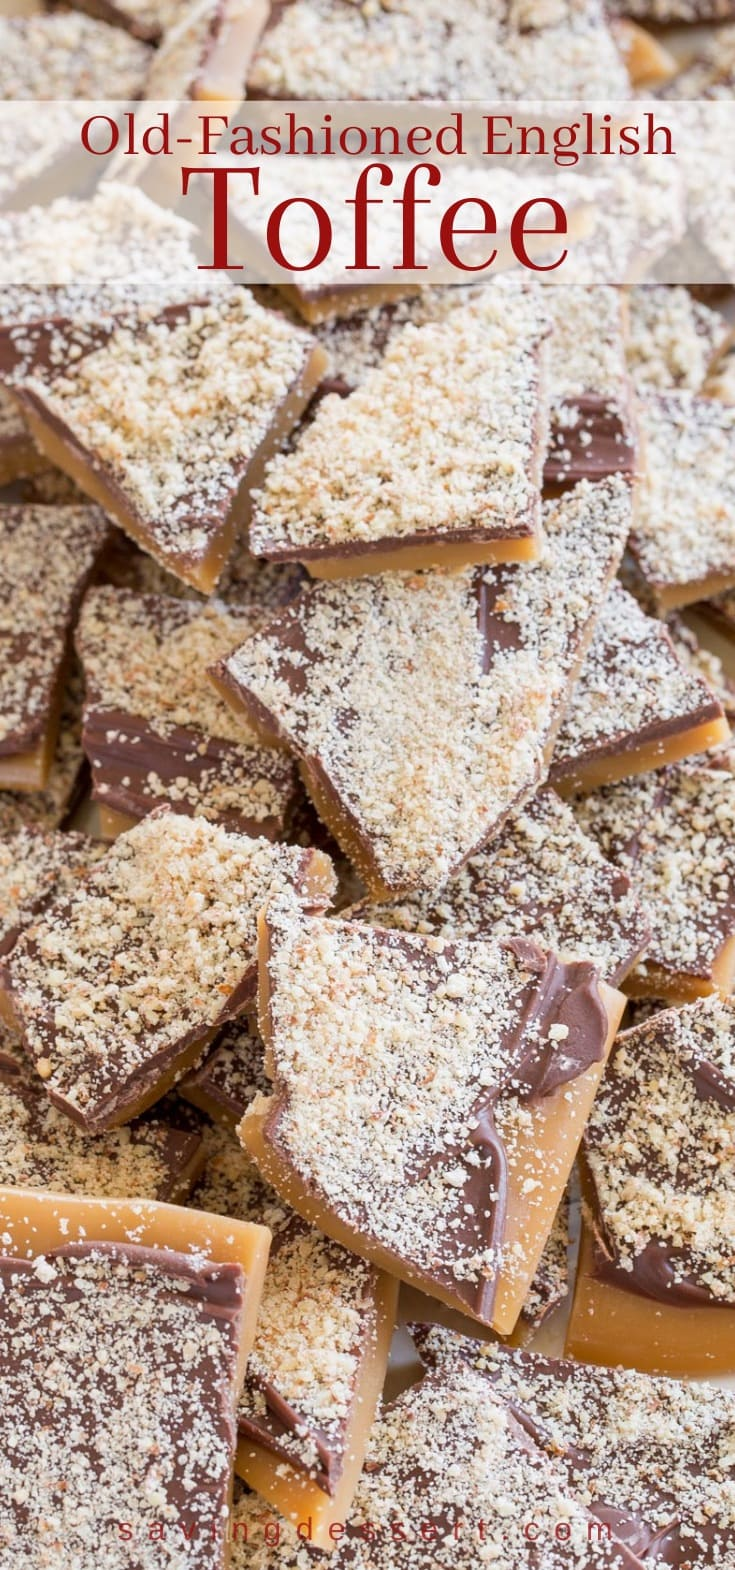 A tray of old fashioned English style Toffee topped with grated nuts